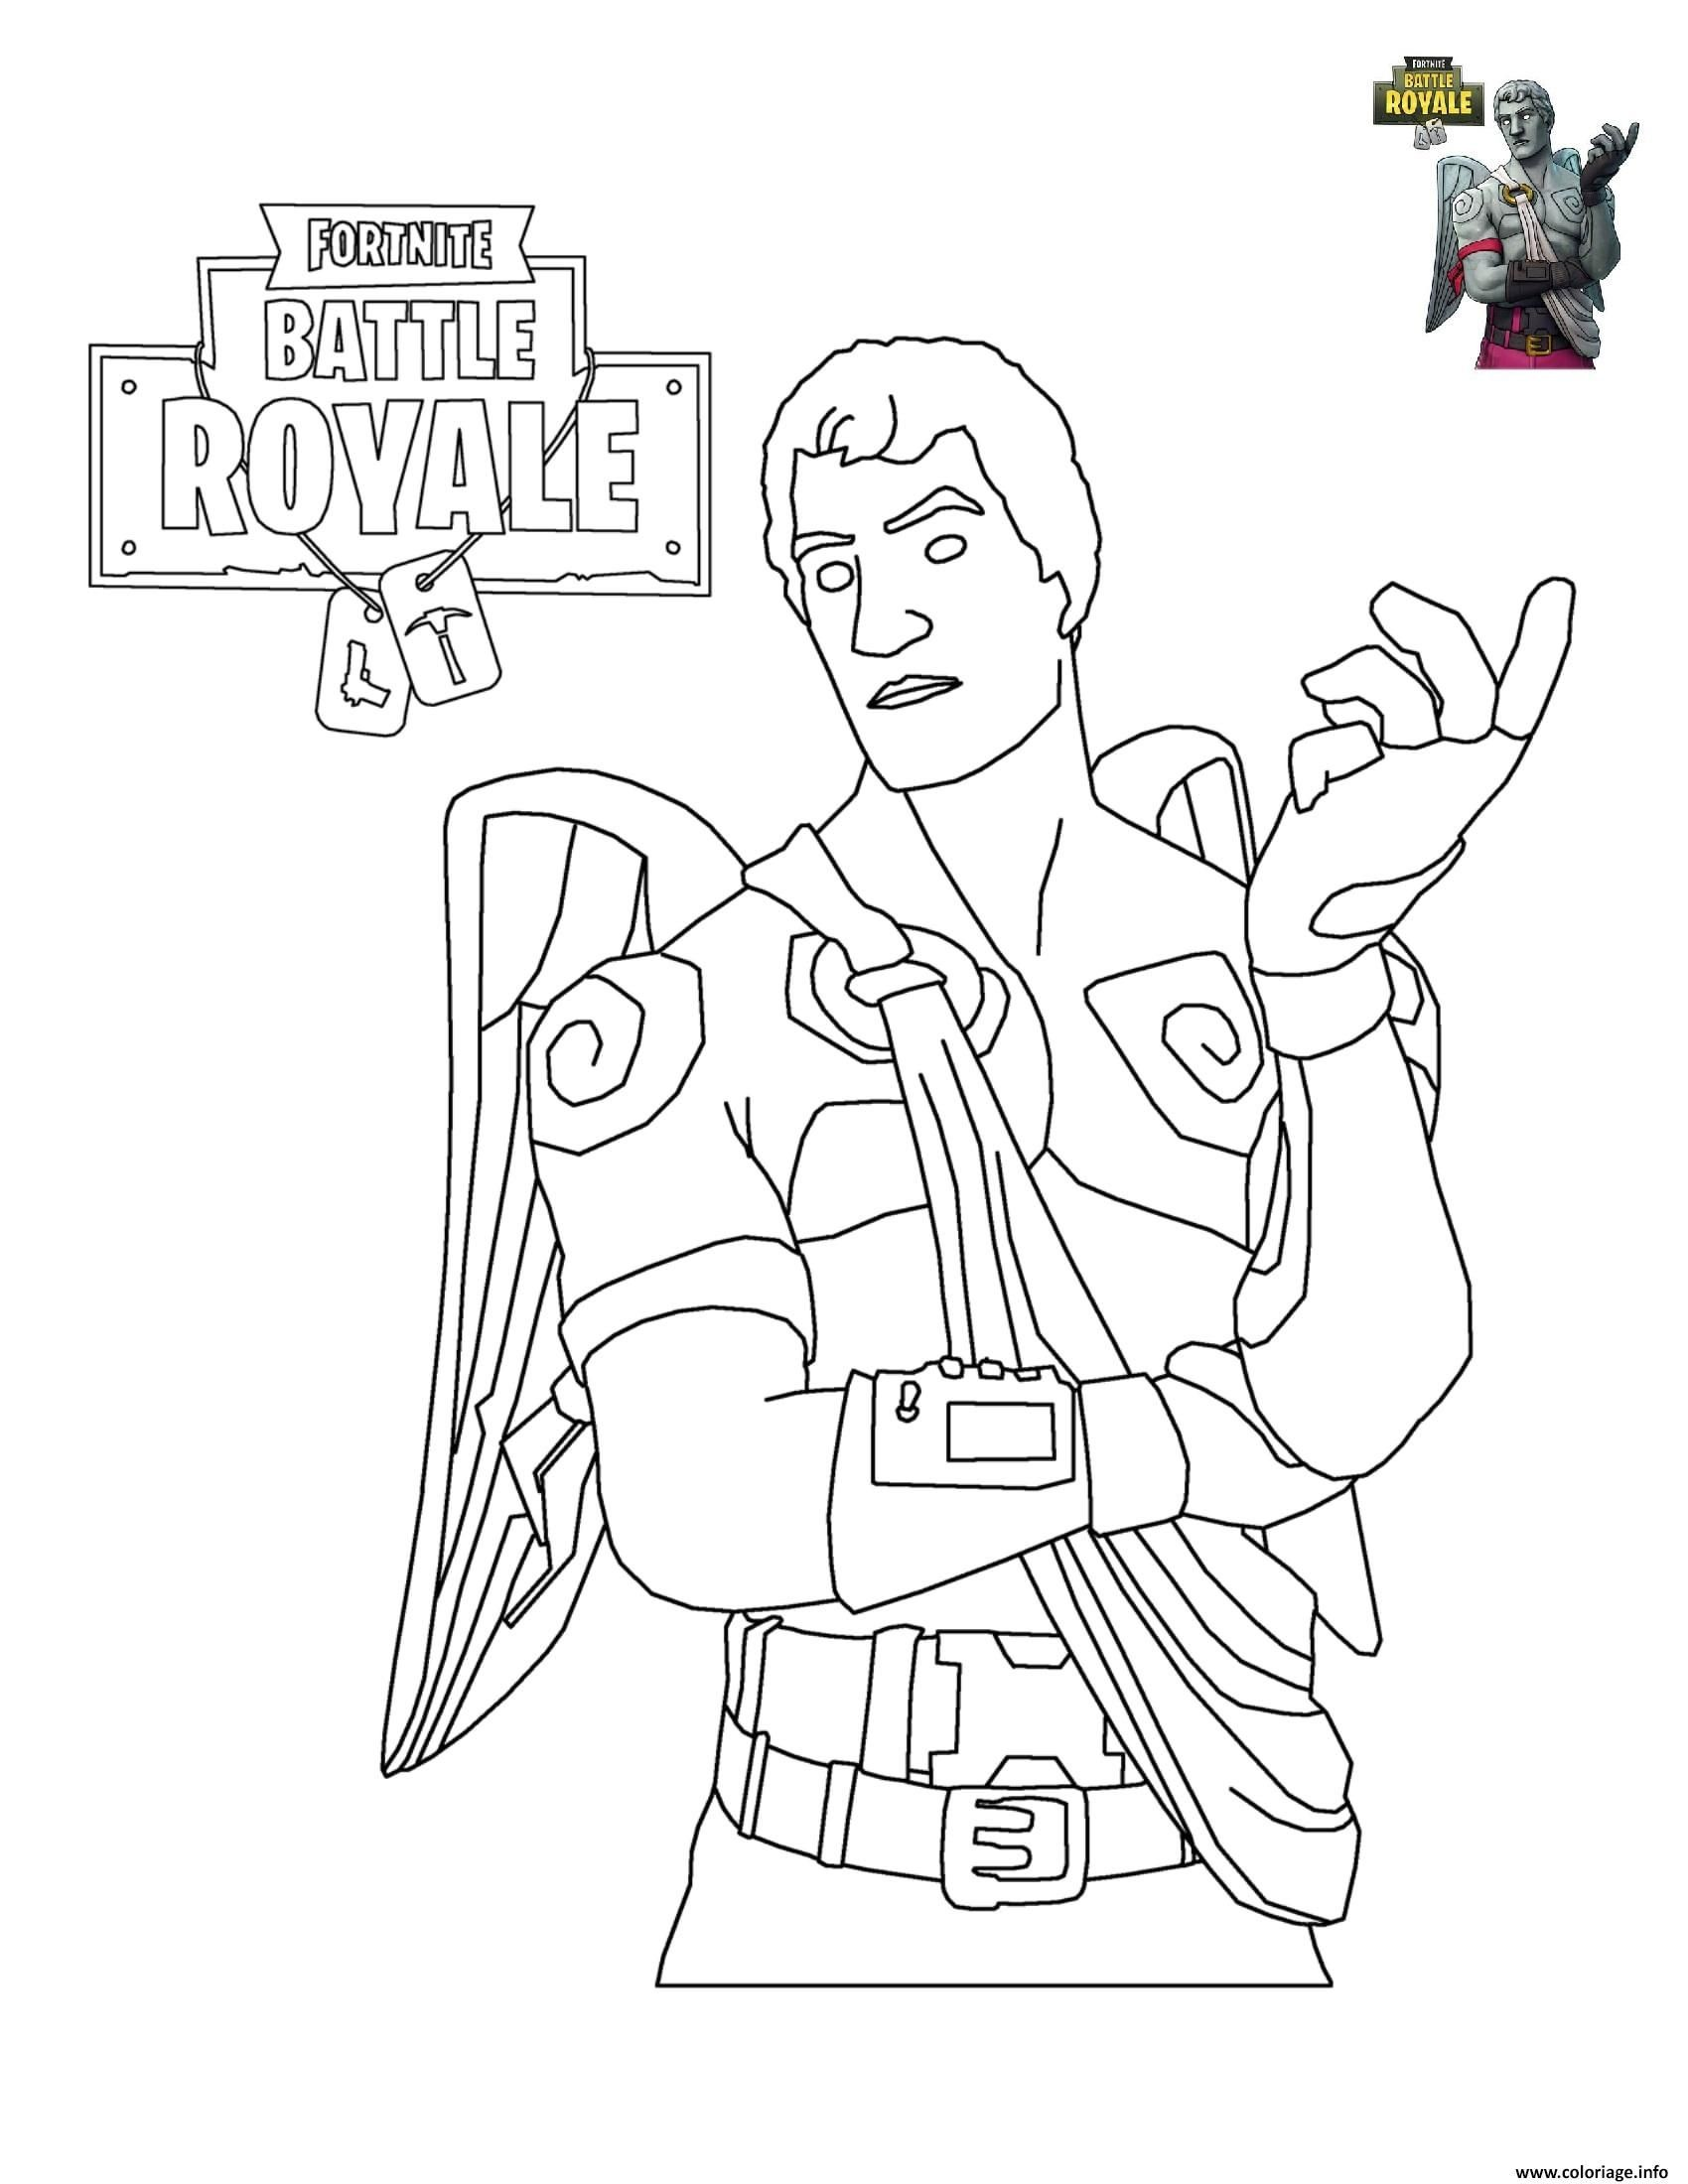 Coloriage De fortnite A Imprimer Gratuitement New Coloriage fortnite Battle Royale Personnage 6   Imprimer Of Coloriage De fortnite A Imprimer Gratuitement